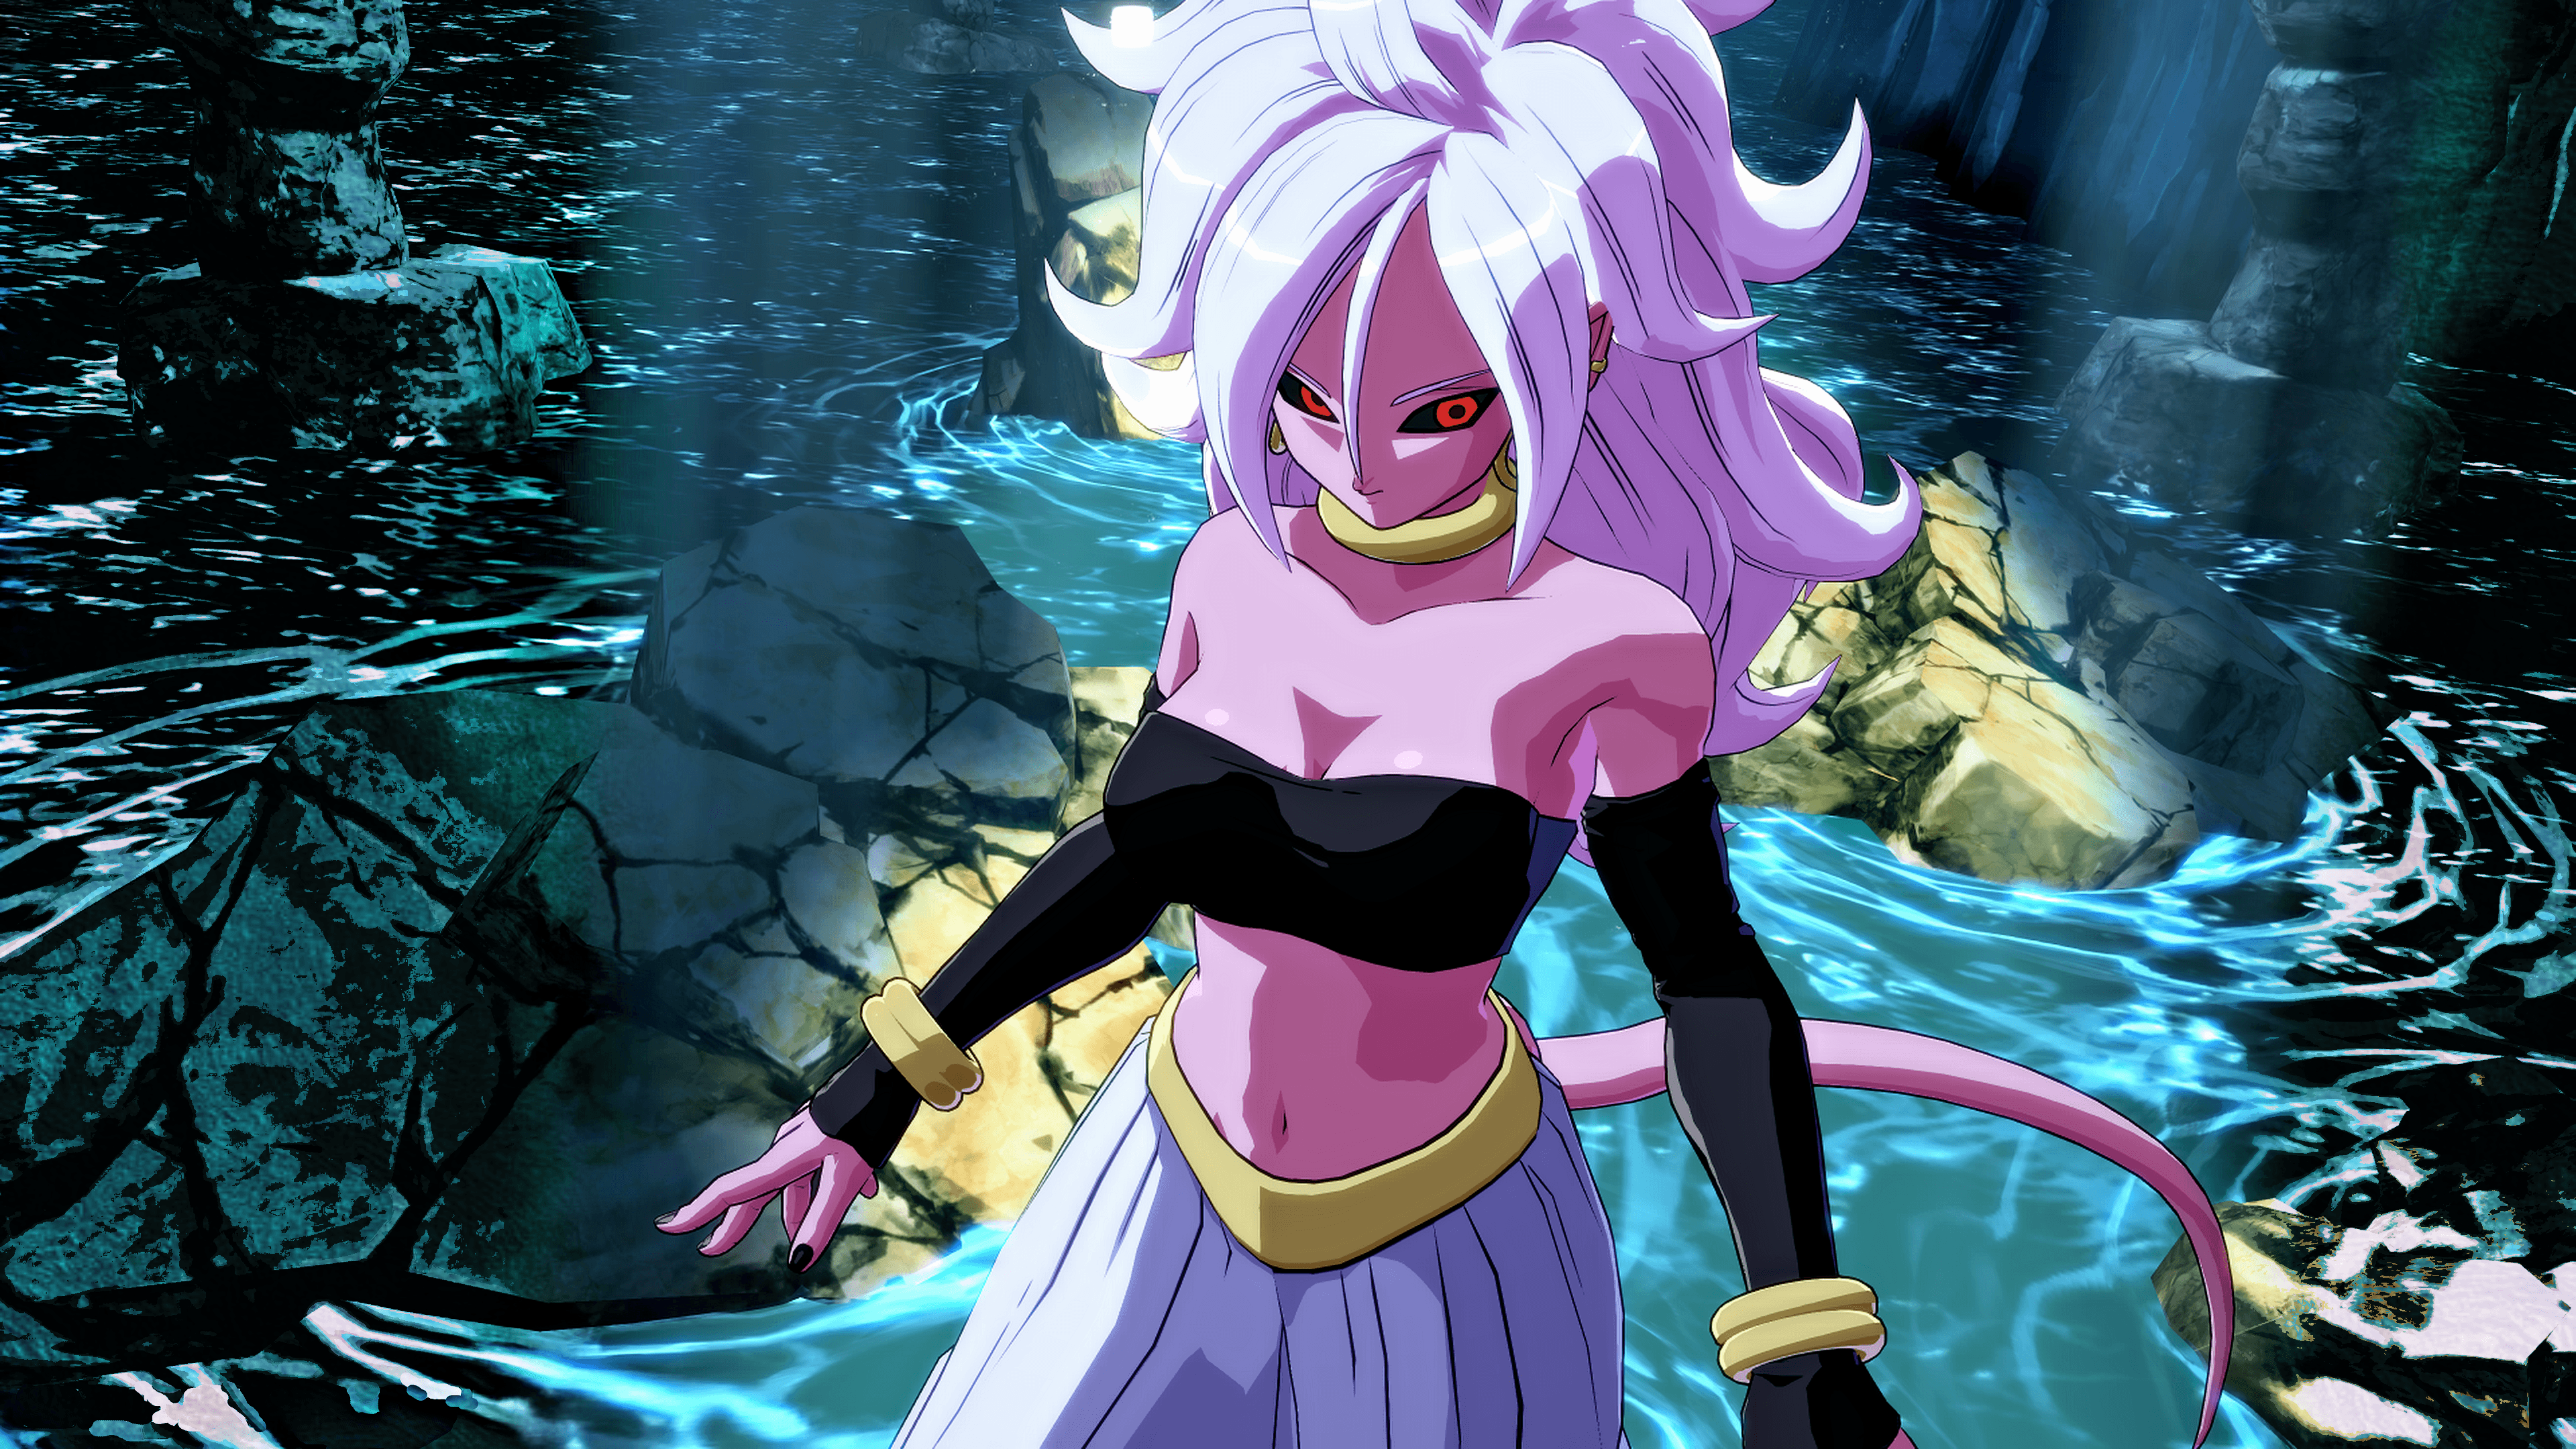 Android 21 Hd Wallpapers Wallpaper Cave